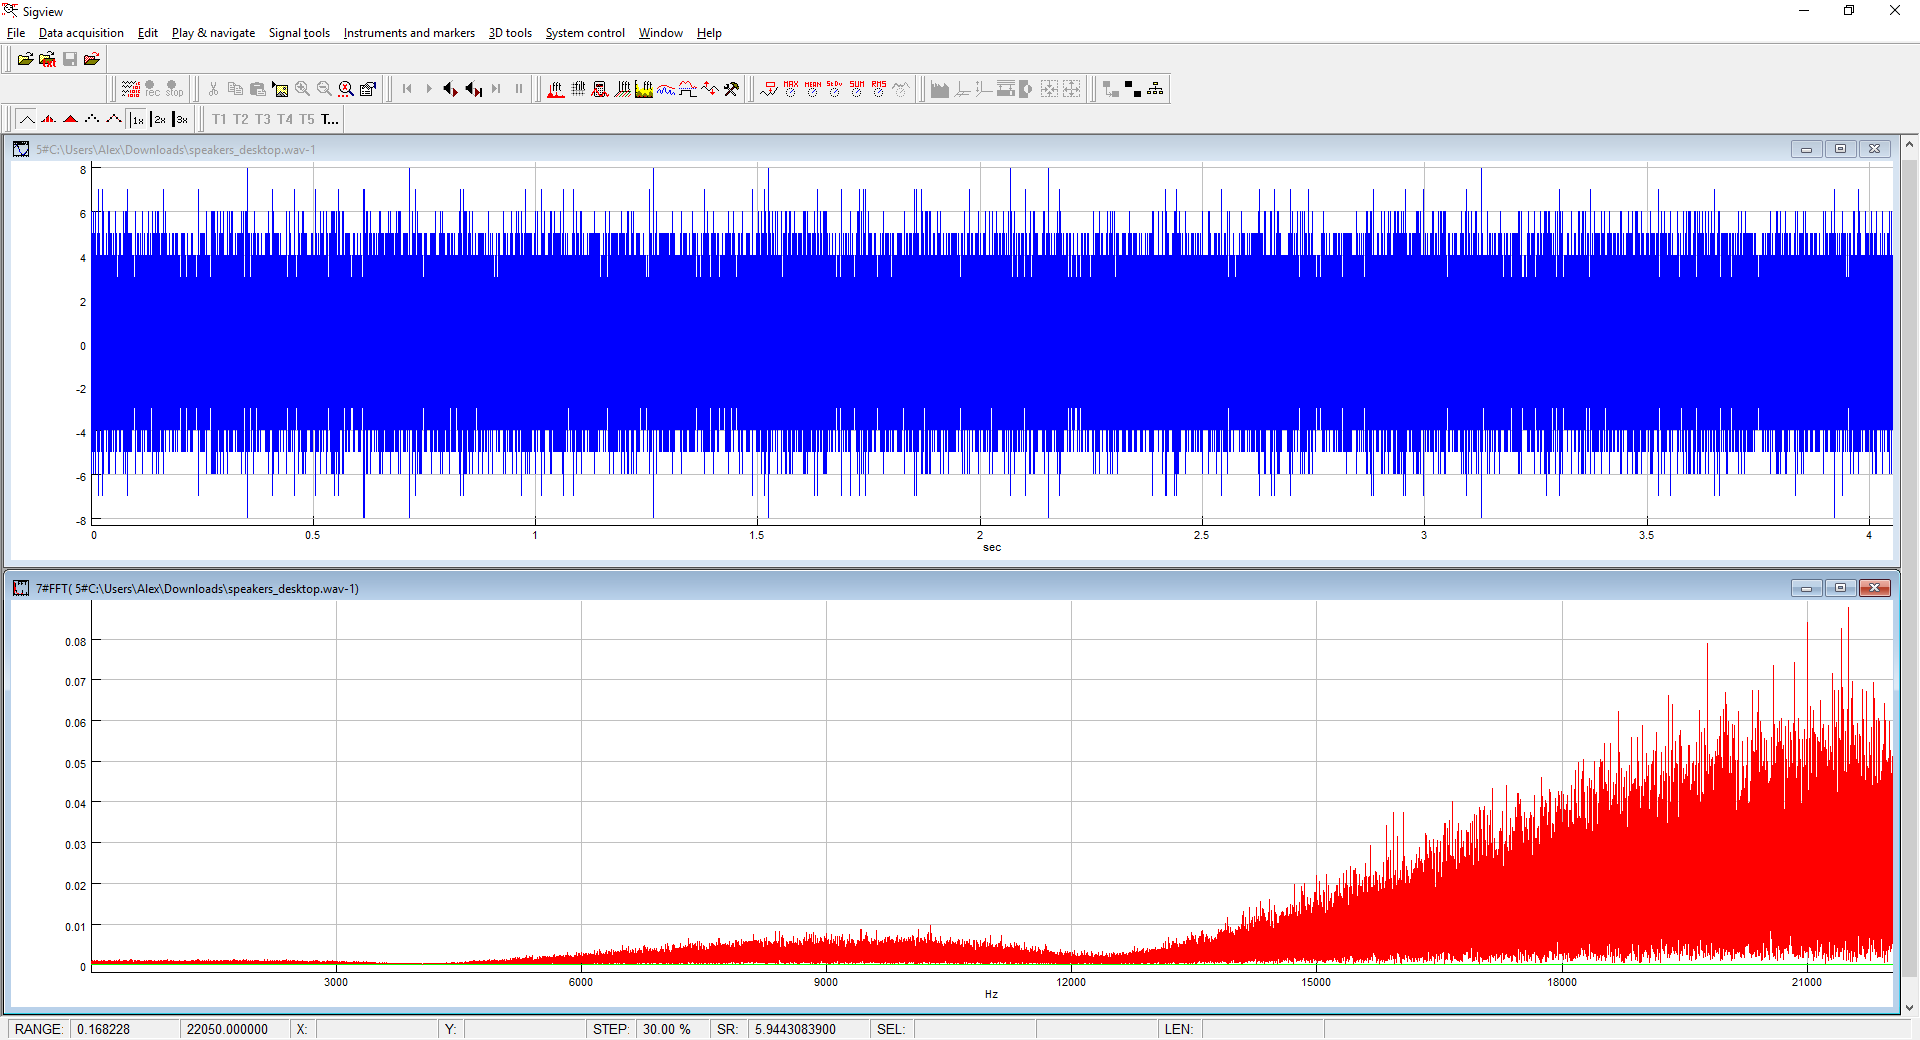 Others hear whistling noise in virtual meetings from my audio lHoVt.png